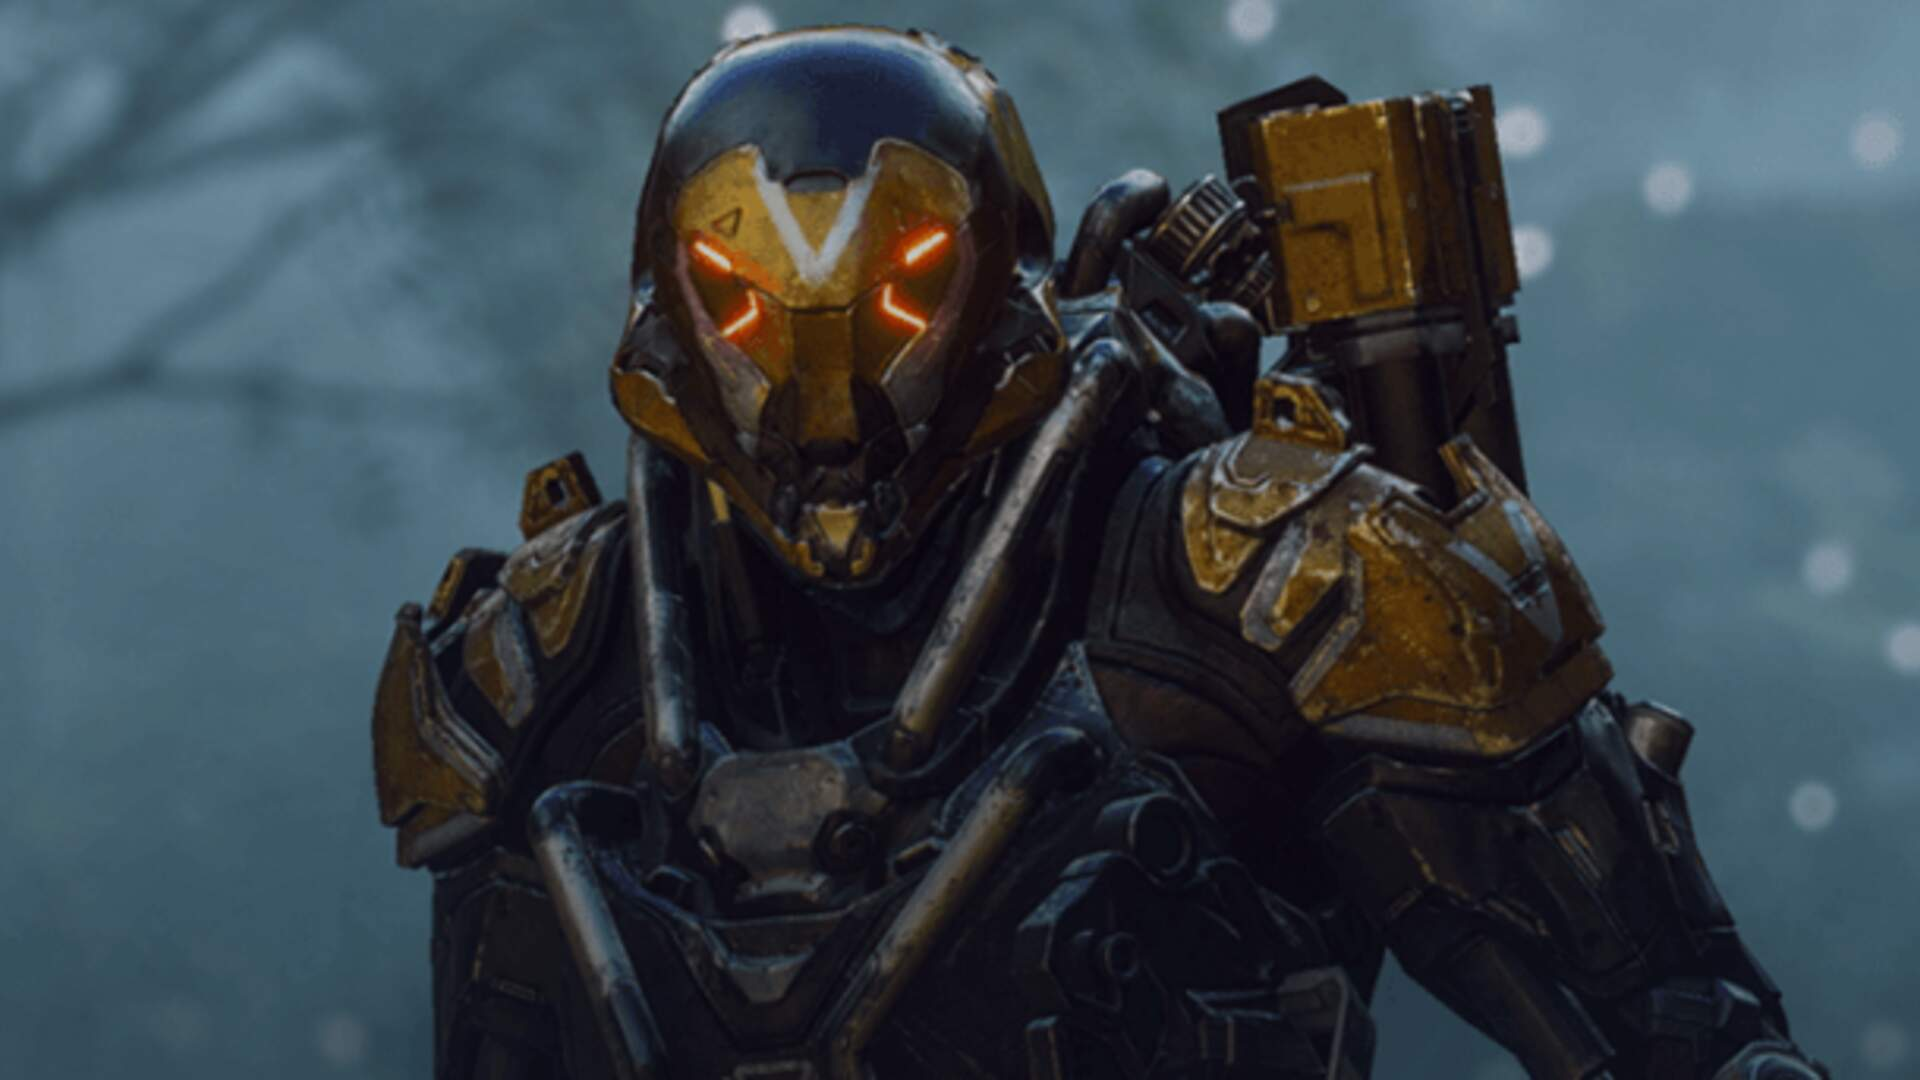 EA Stock Tumbles After Rumors of Anthem Delay